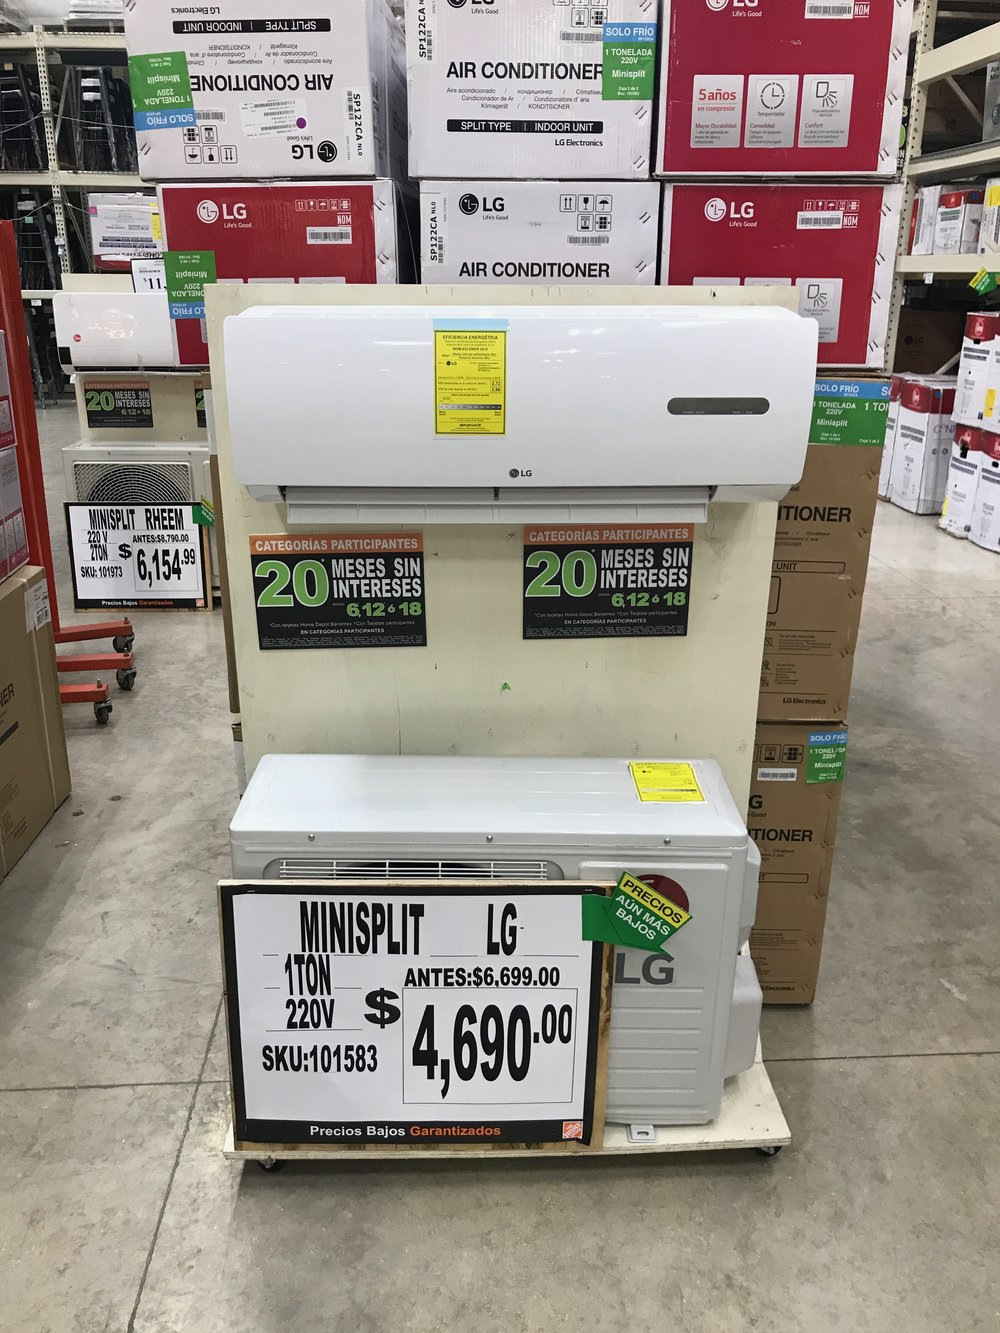 This high efficiency mini split air conditioning system is 3 x more expensive in the United States than at this Home Depot in Playa Del Carmen, Mexico